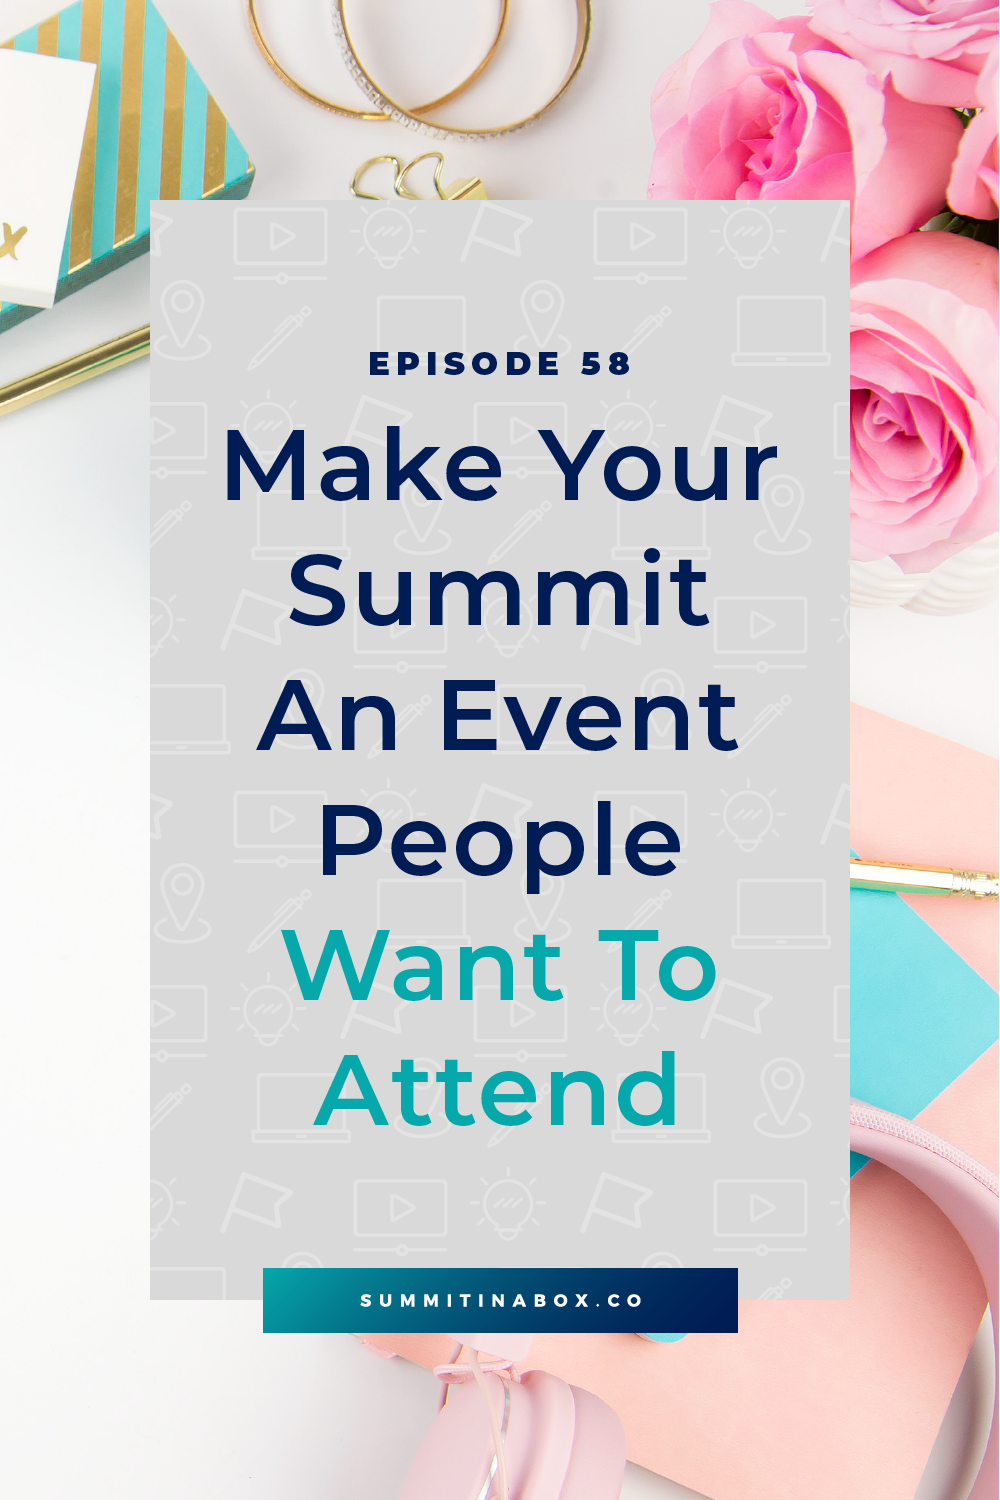 Are you creating a virtual summit that people actually want to attend? Let's break down the key to doing that and dive deep with 3 tips to make it happen.